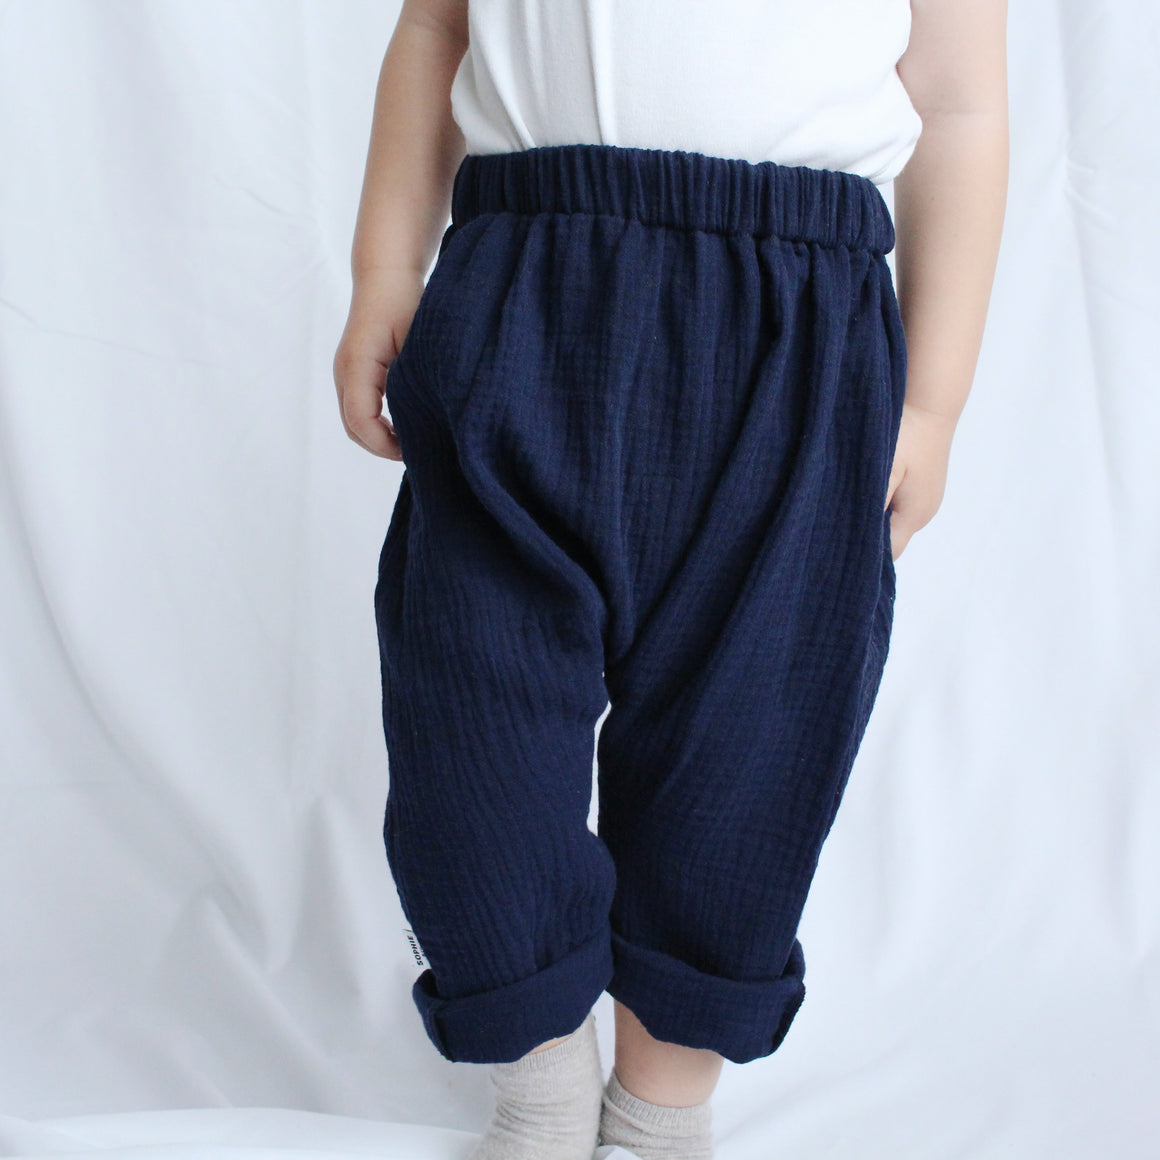 Sophie + Co/Baba of Mine Collab - Navy Cotton Loose Fits